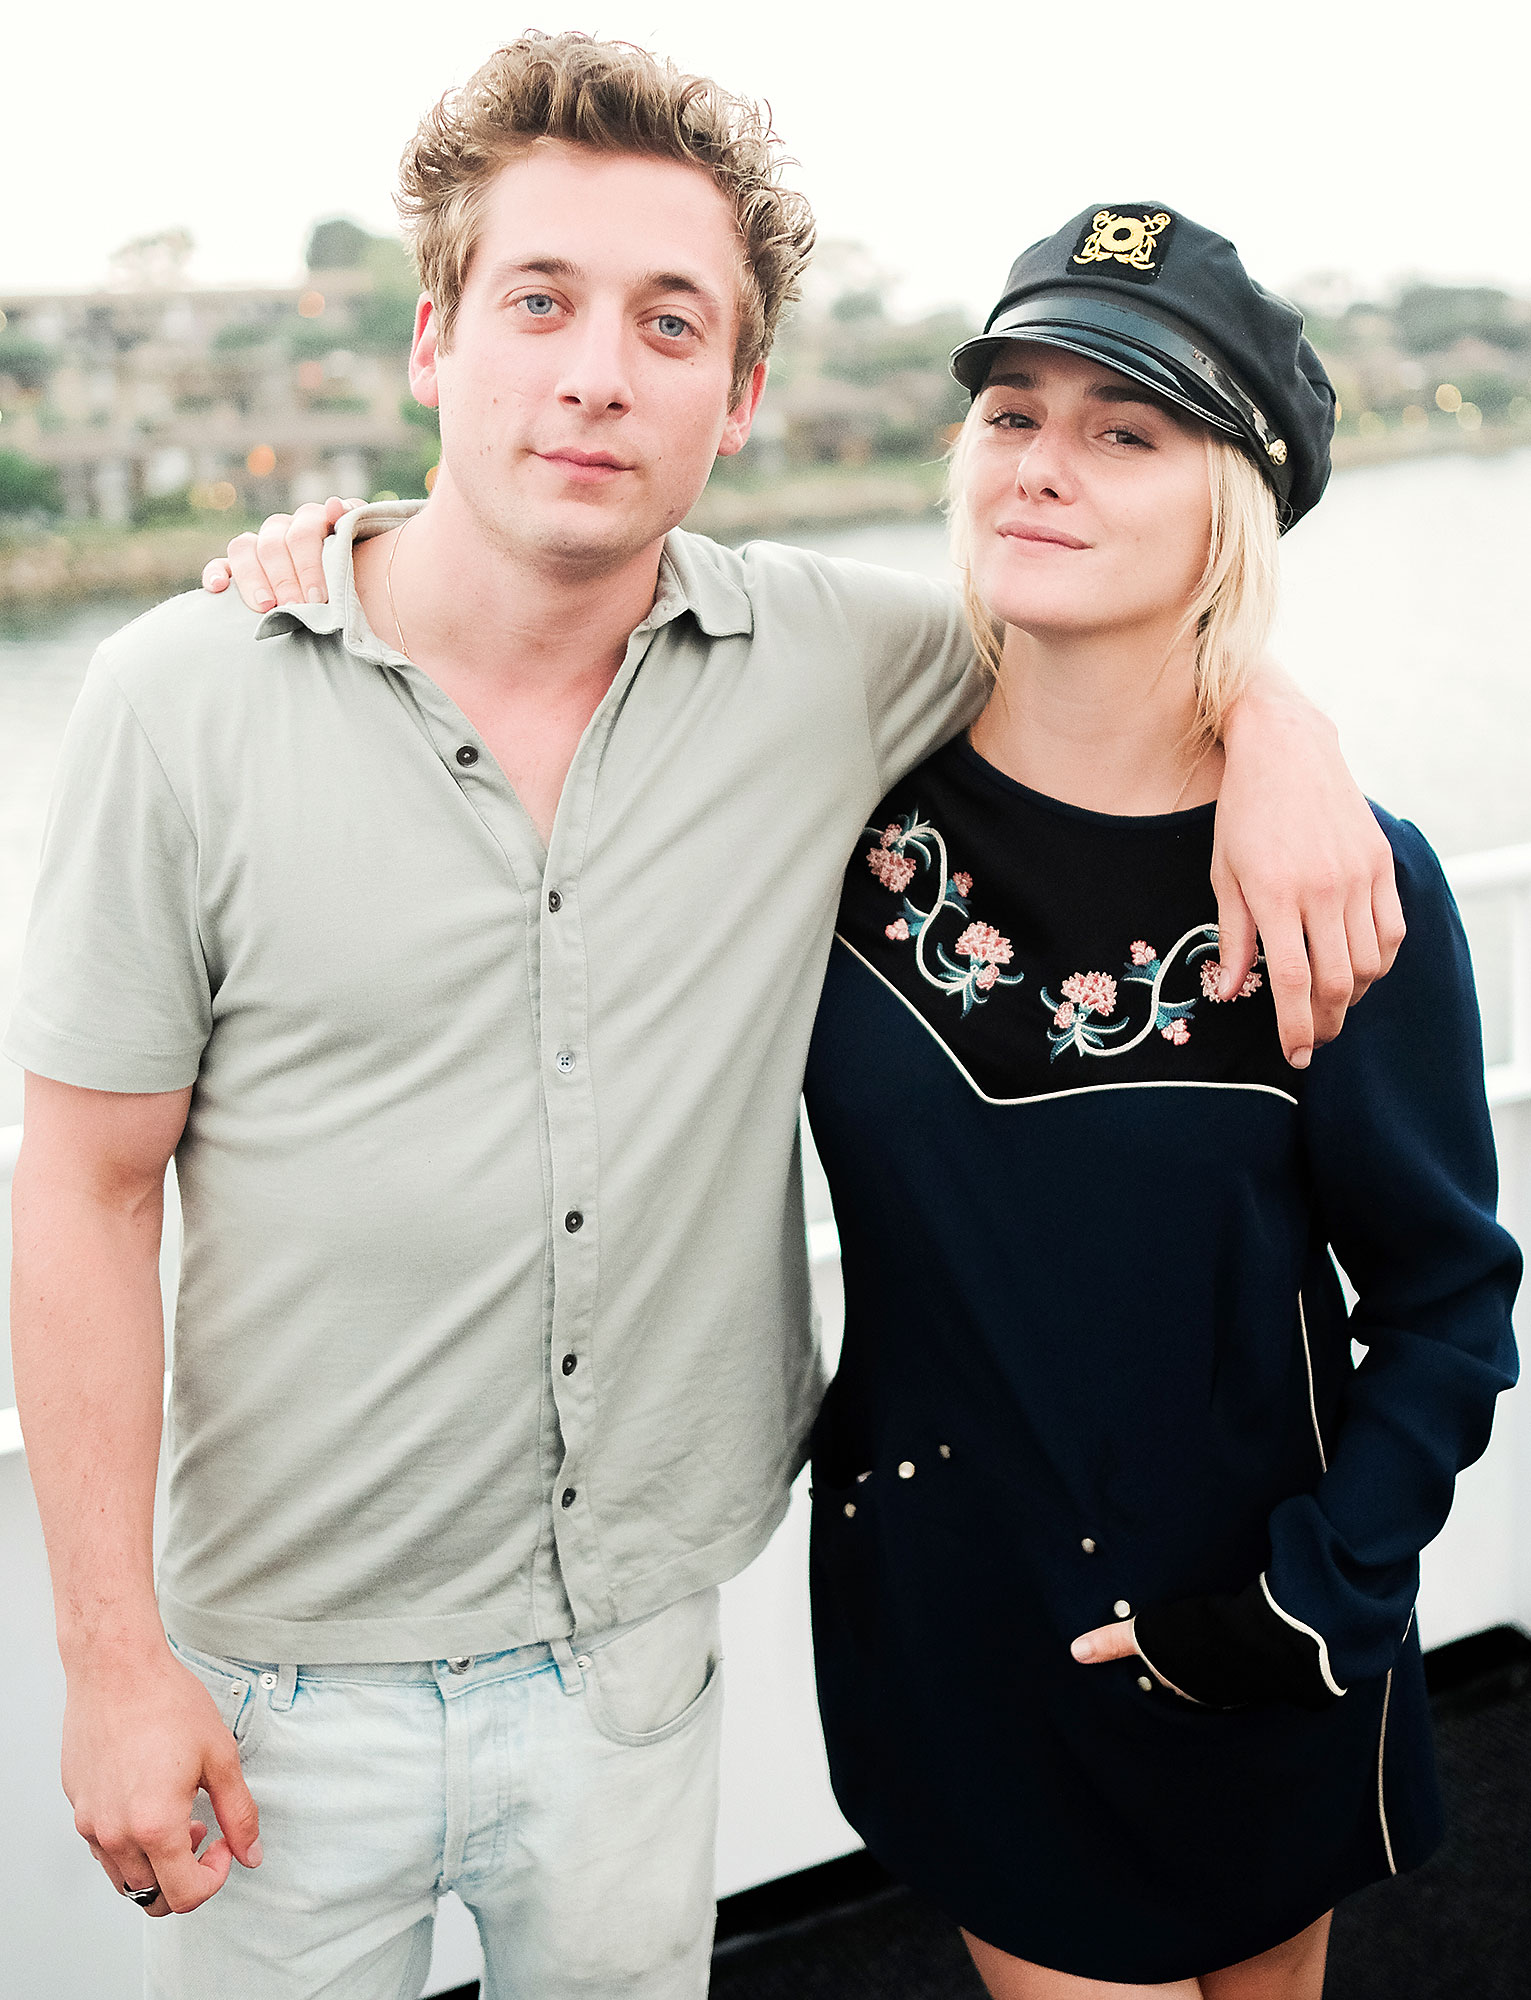 Shameless Jeremy Allen White Learns Parenting Skills From Wife